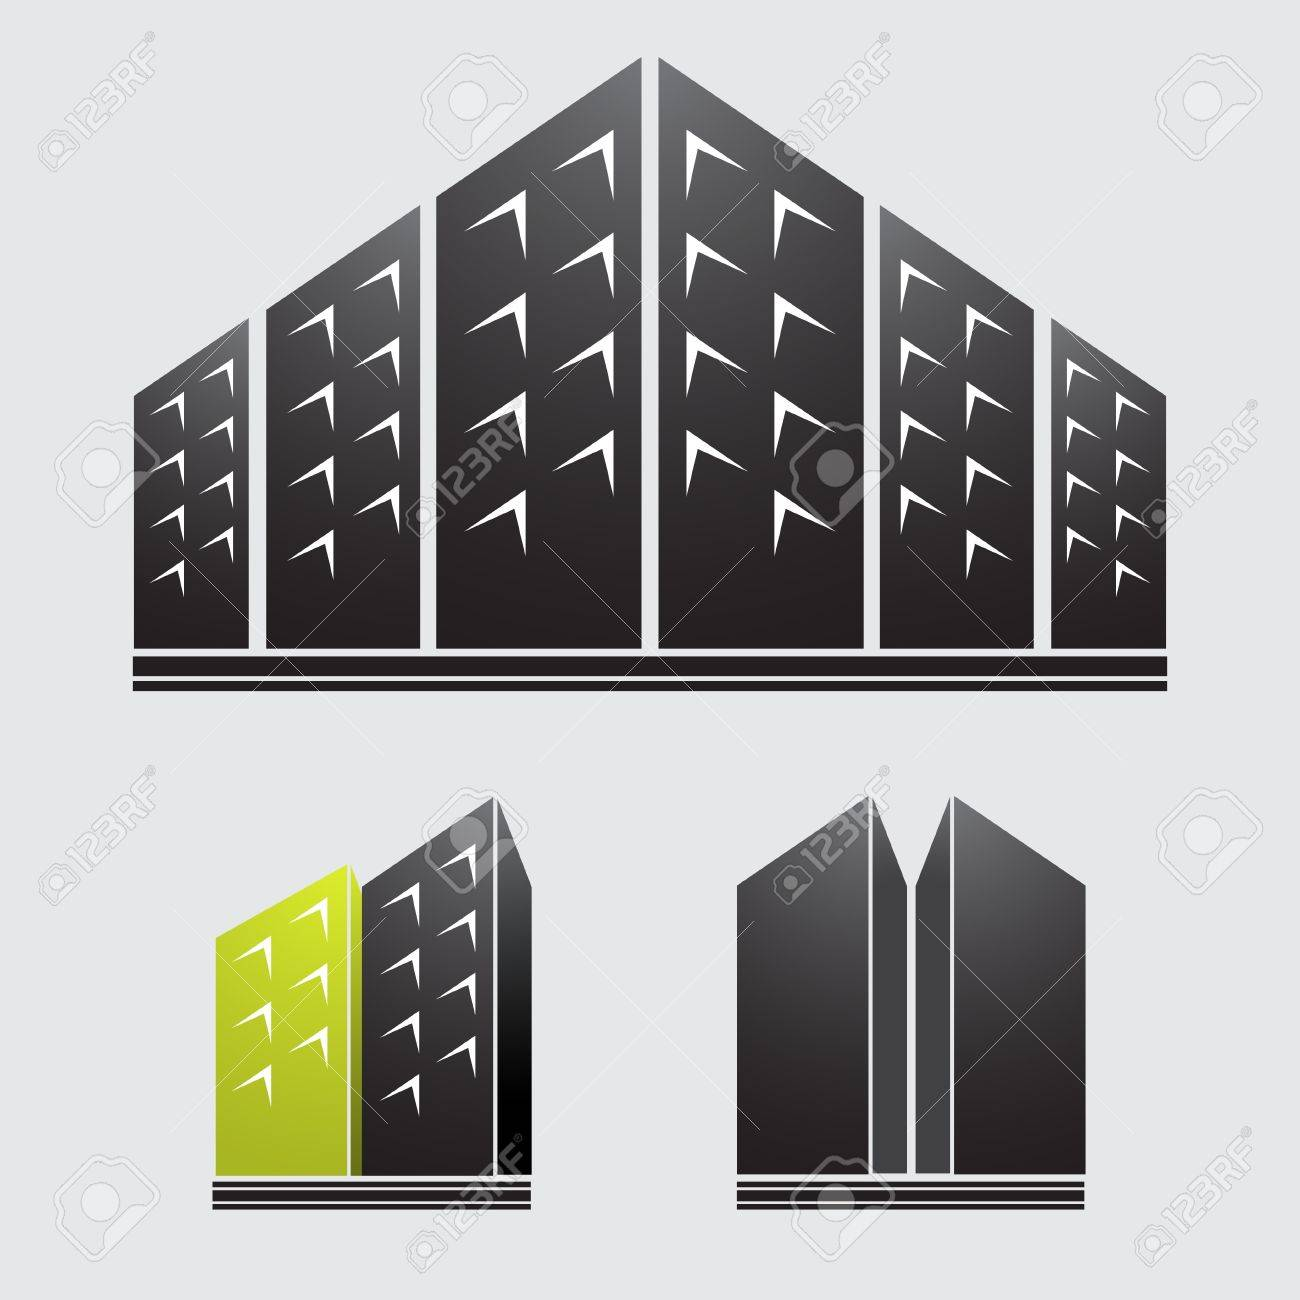 Skyscrapers Stock Vector - 17005510